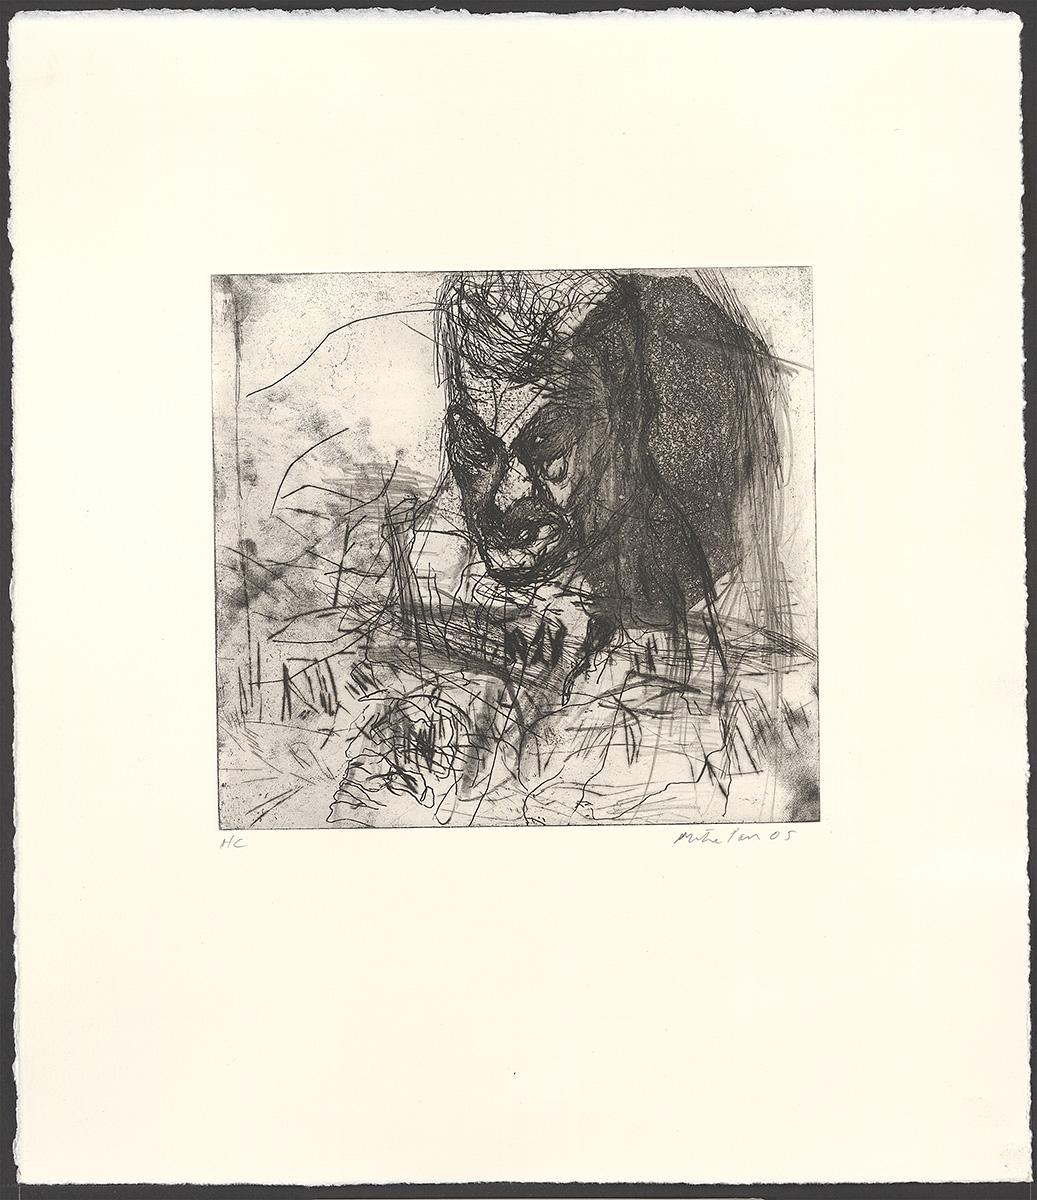 Plate 28 from Rat into eye